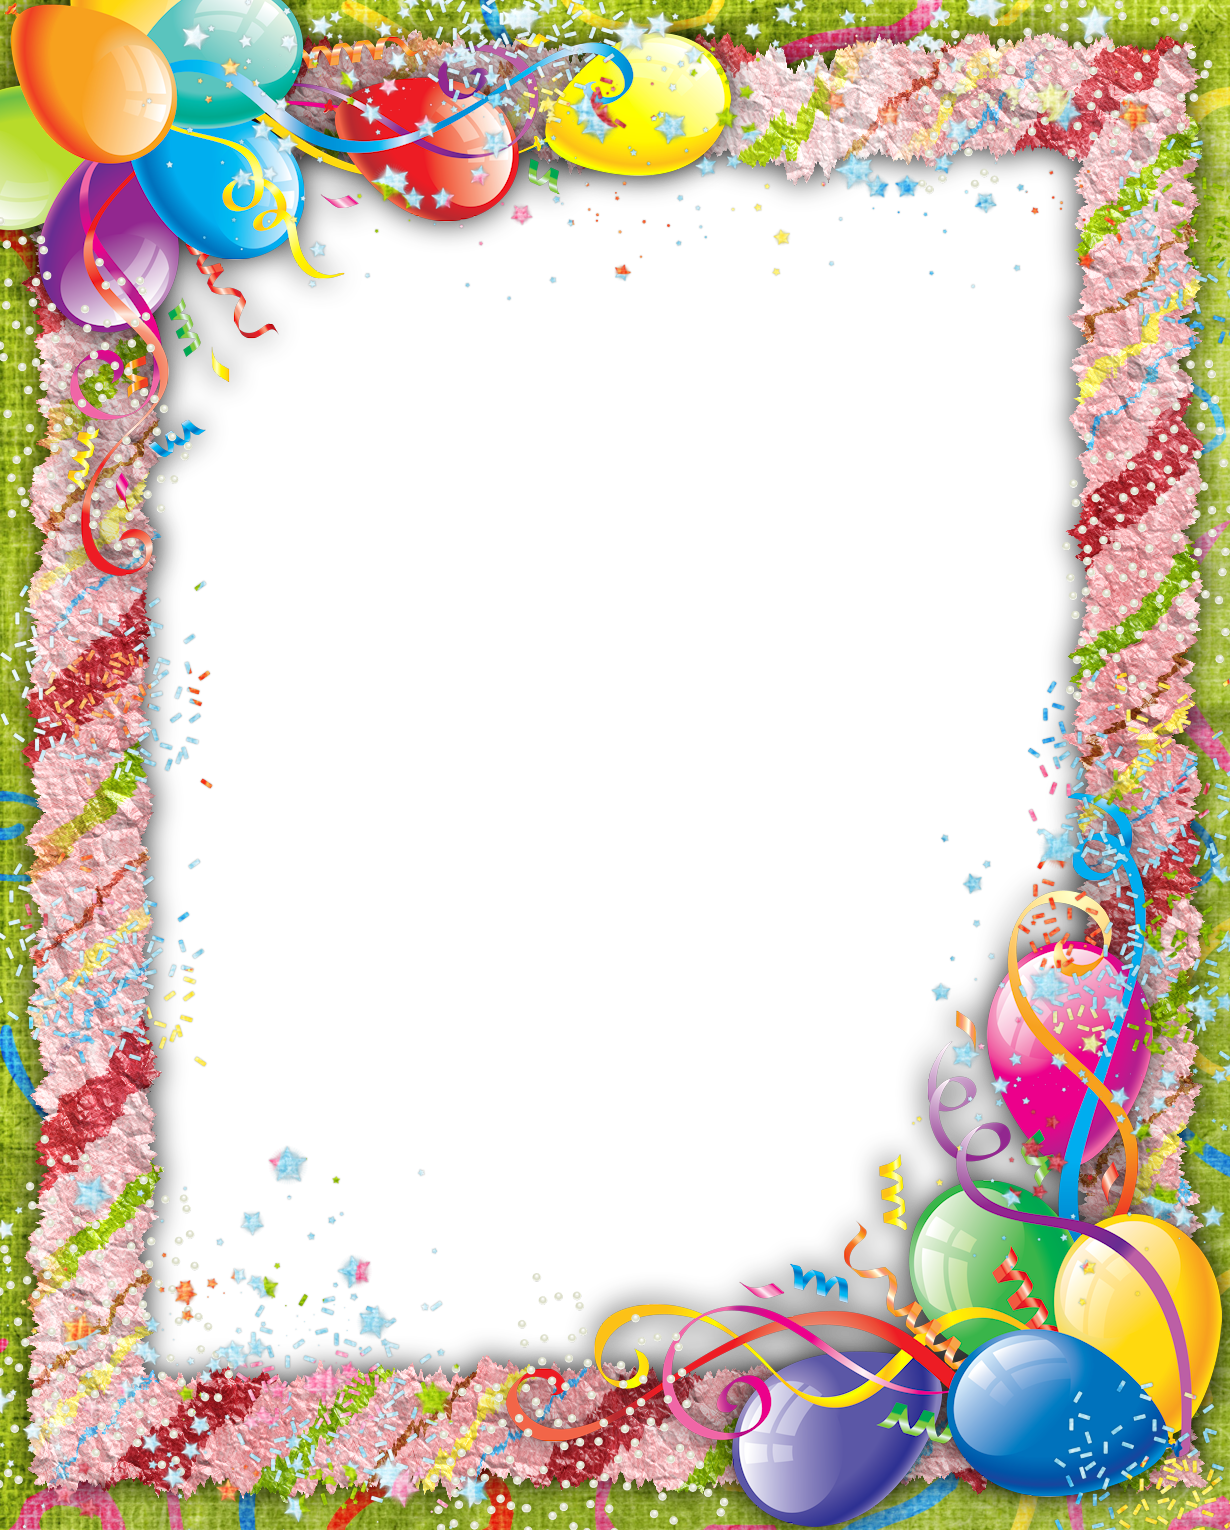 Transparent birthday png marcos. Congratulations clipart frame